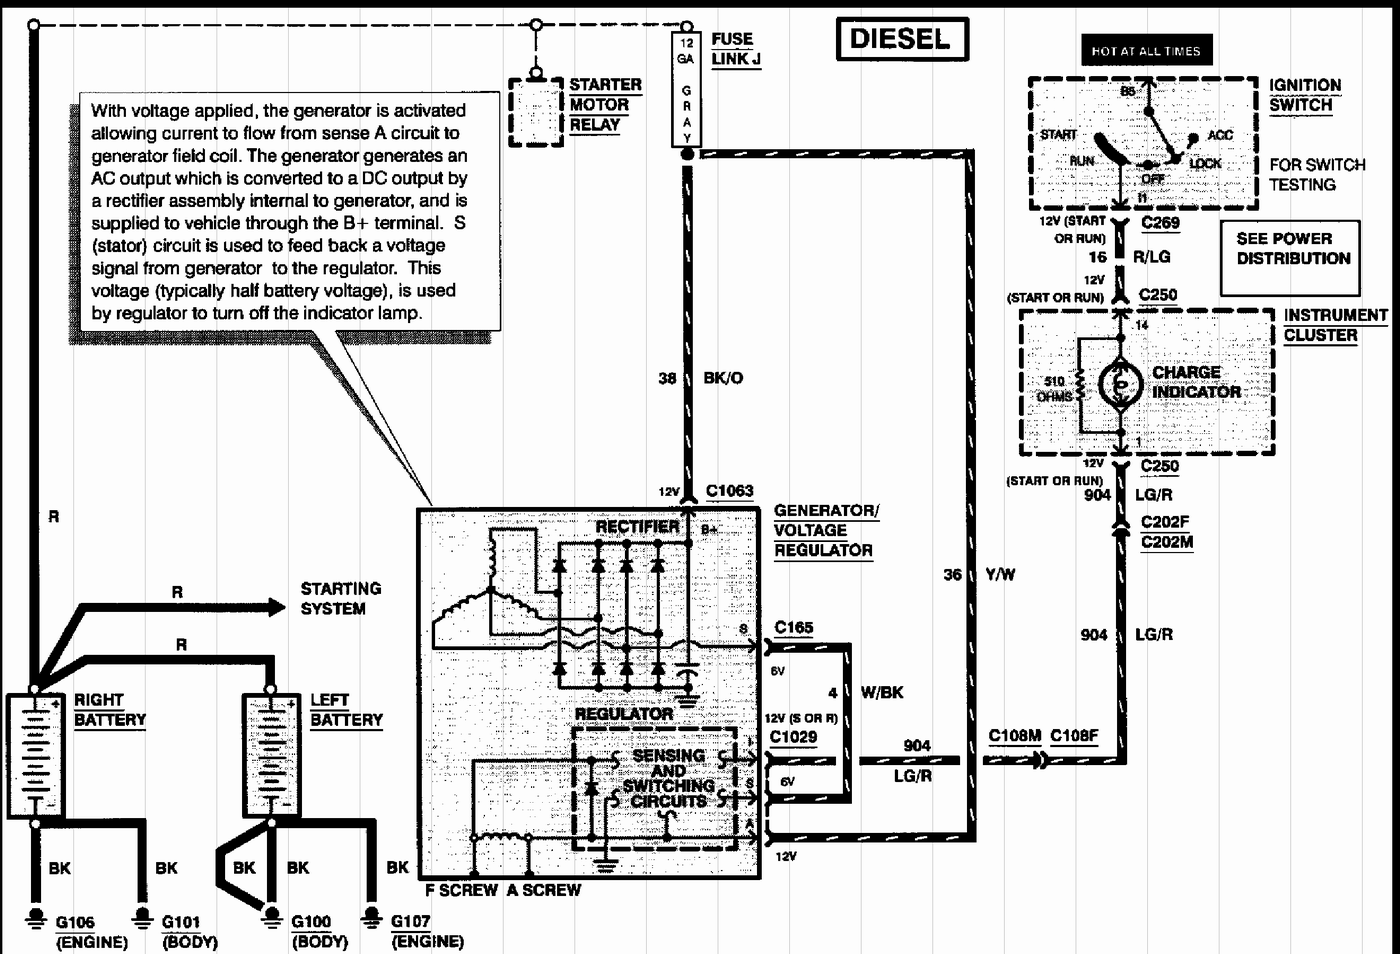 medium resolution of 97 ford taurus wiring diagram eeec